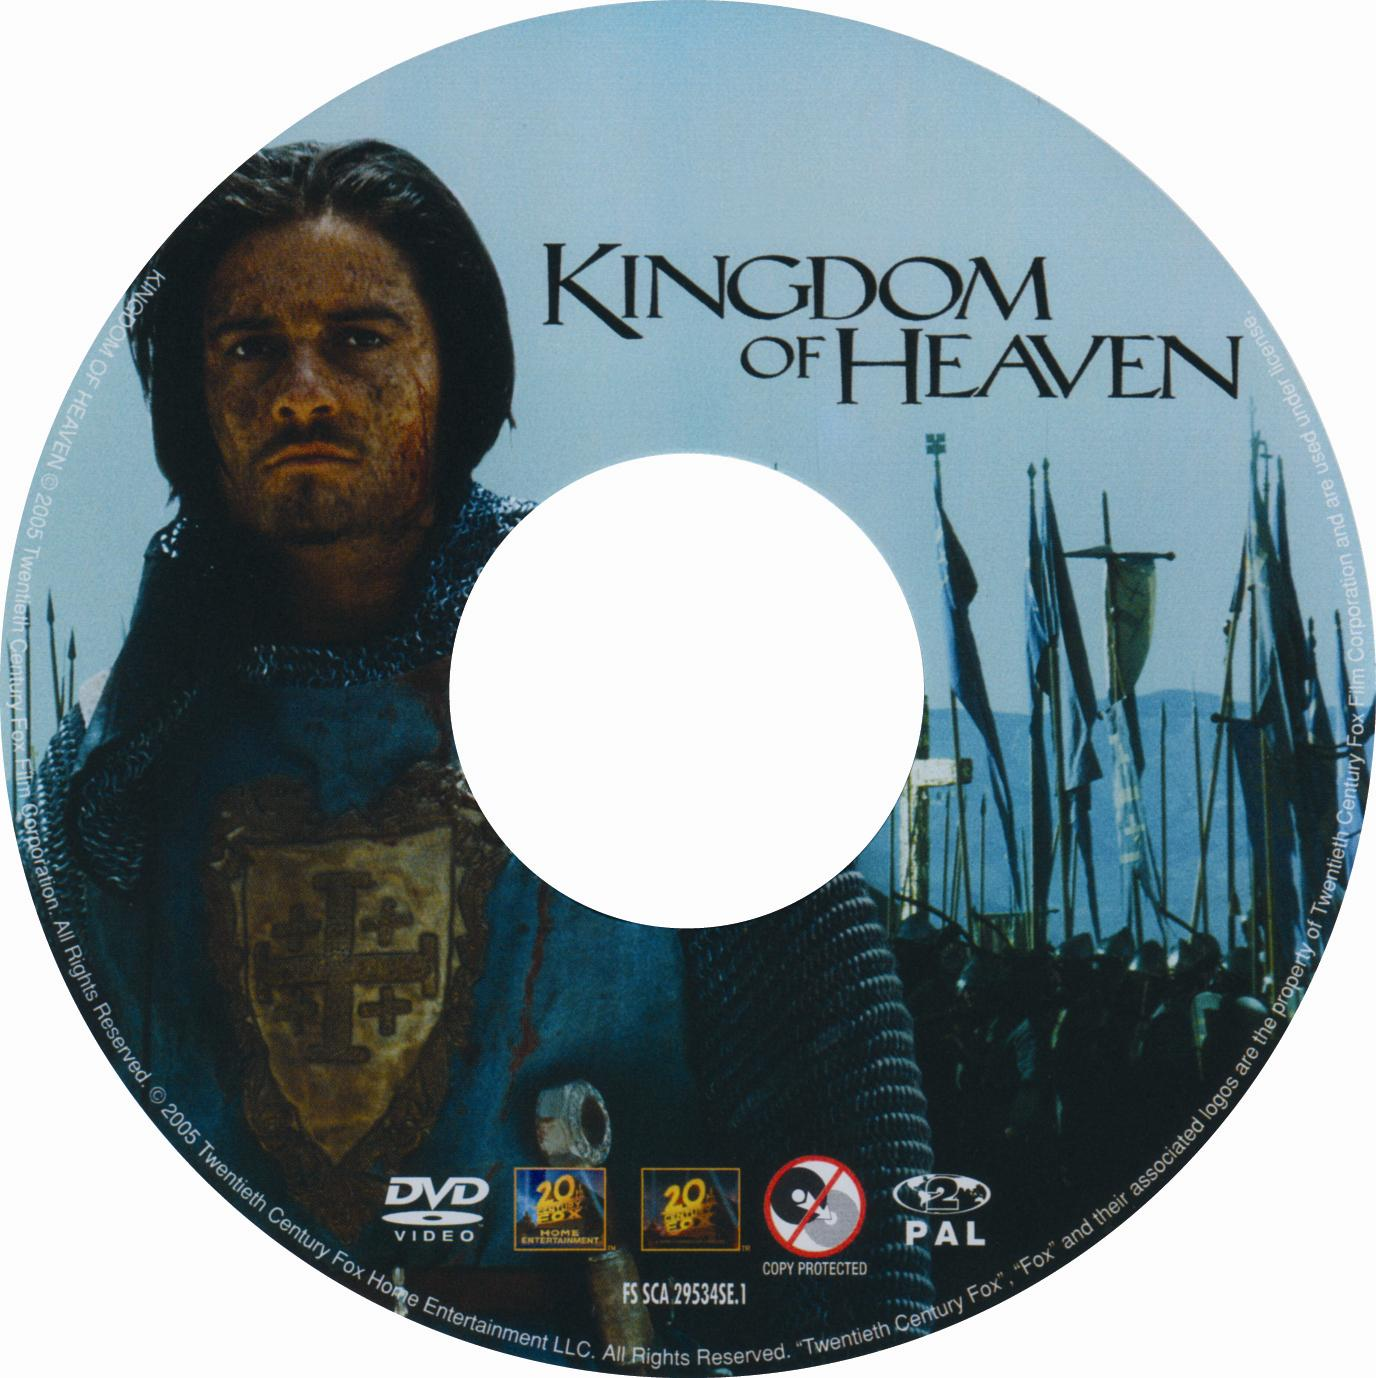 This is an image of Impertinent Kingdom of Heaven Dvd Label